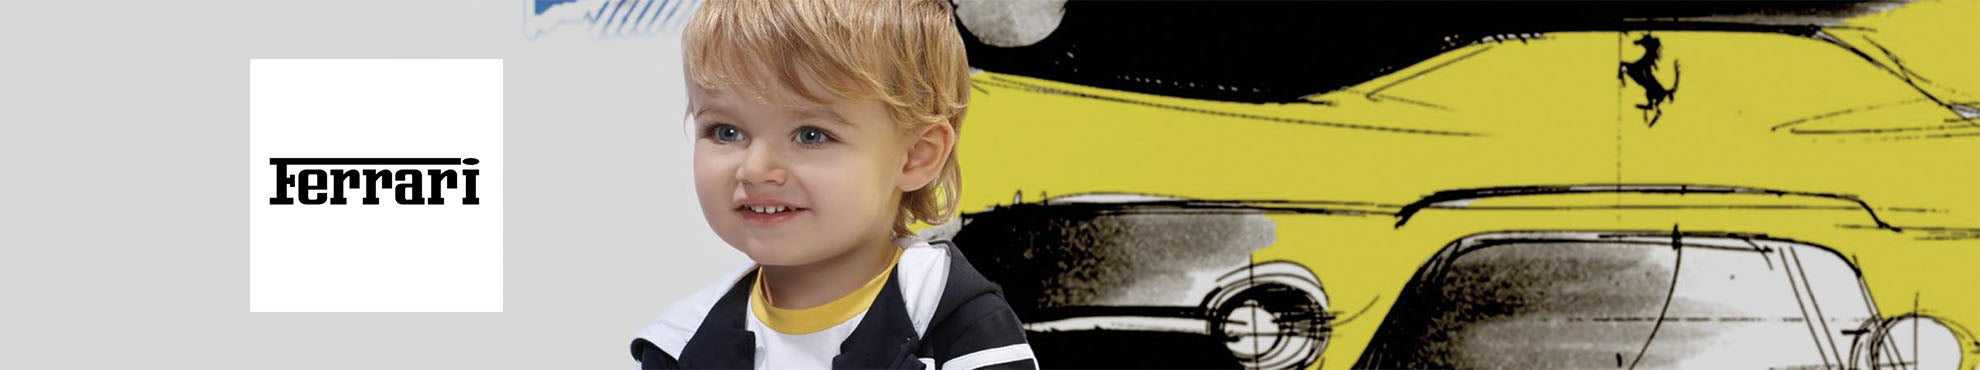 Ferrari - designer children's clothing online store, boutique and outlet, clothes fro boys & girls